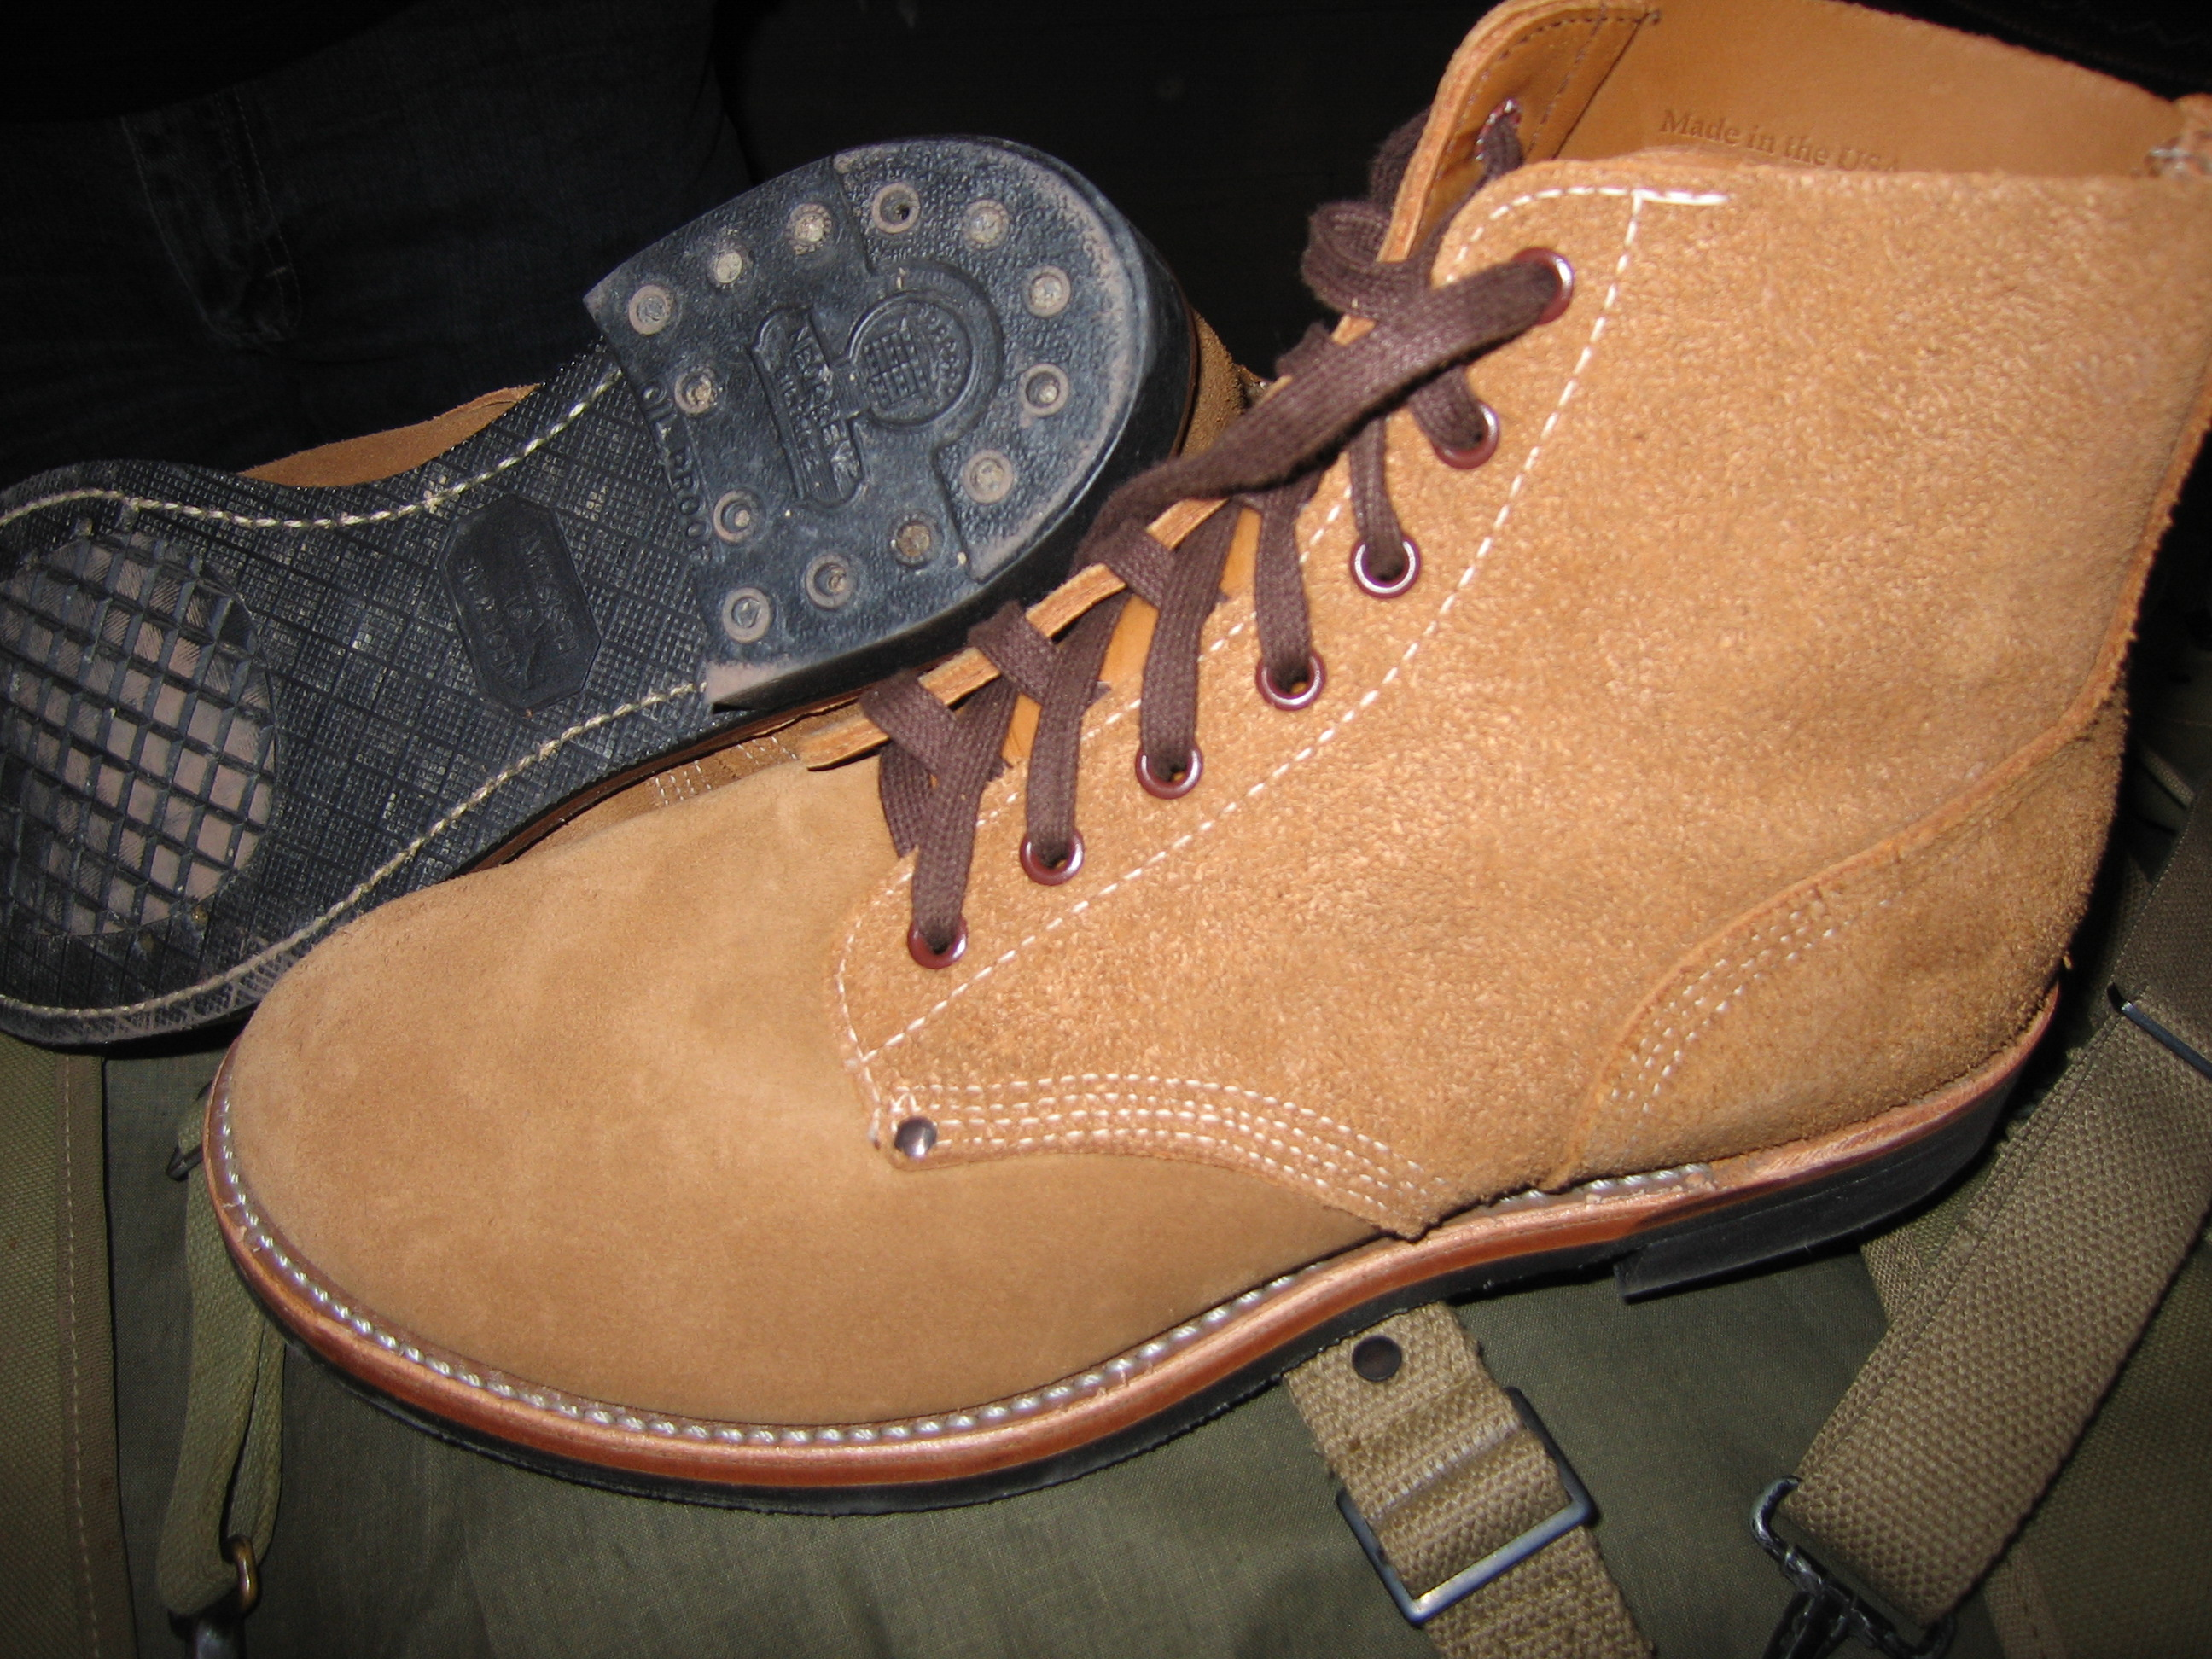 90th Idpg Ww2 Impressions Roughout Boots Review